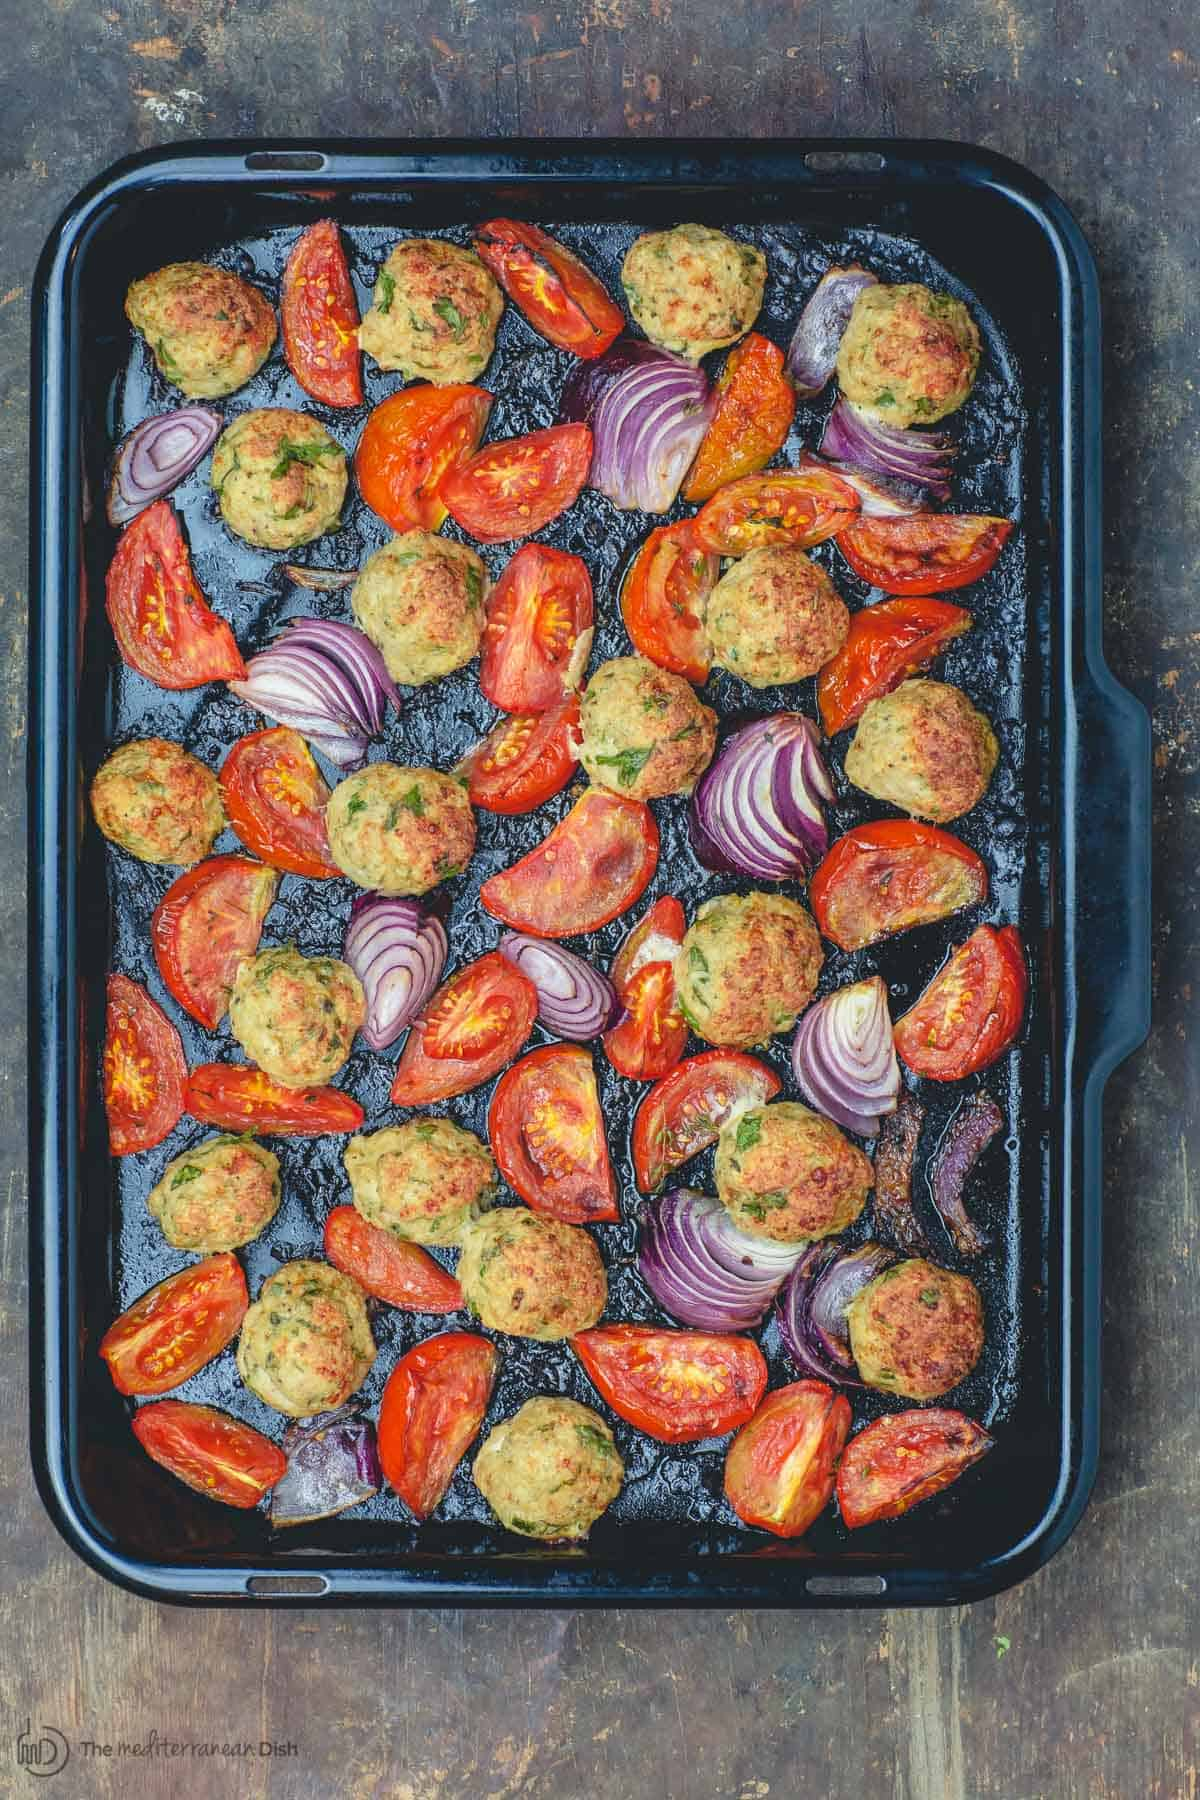 Baked chicken meatballs with onions and tomatoes in baking pan